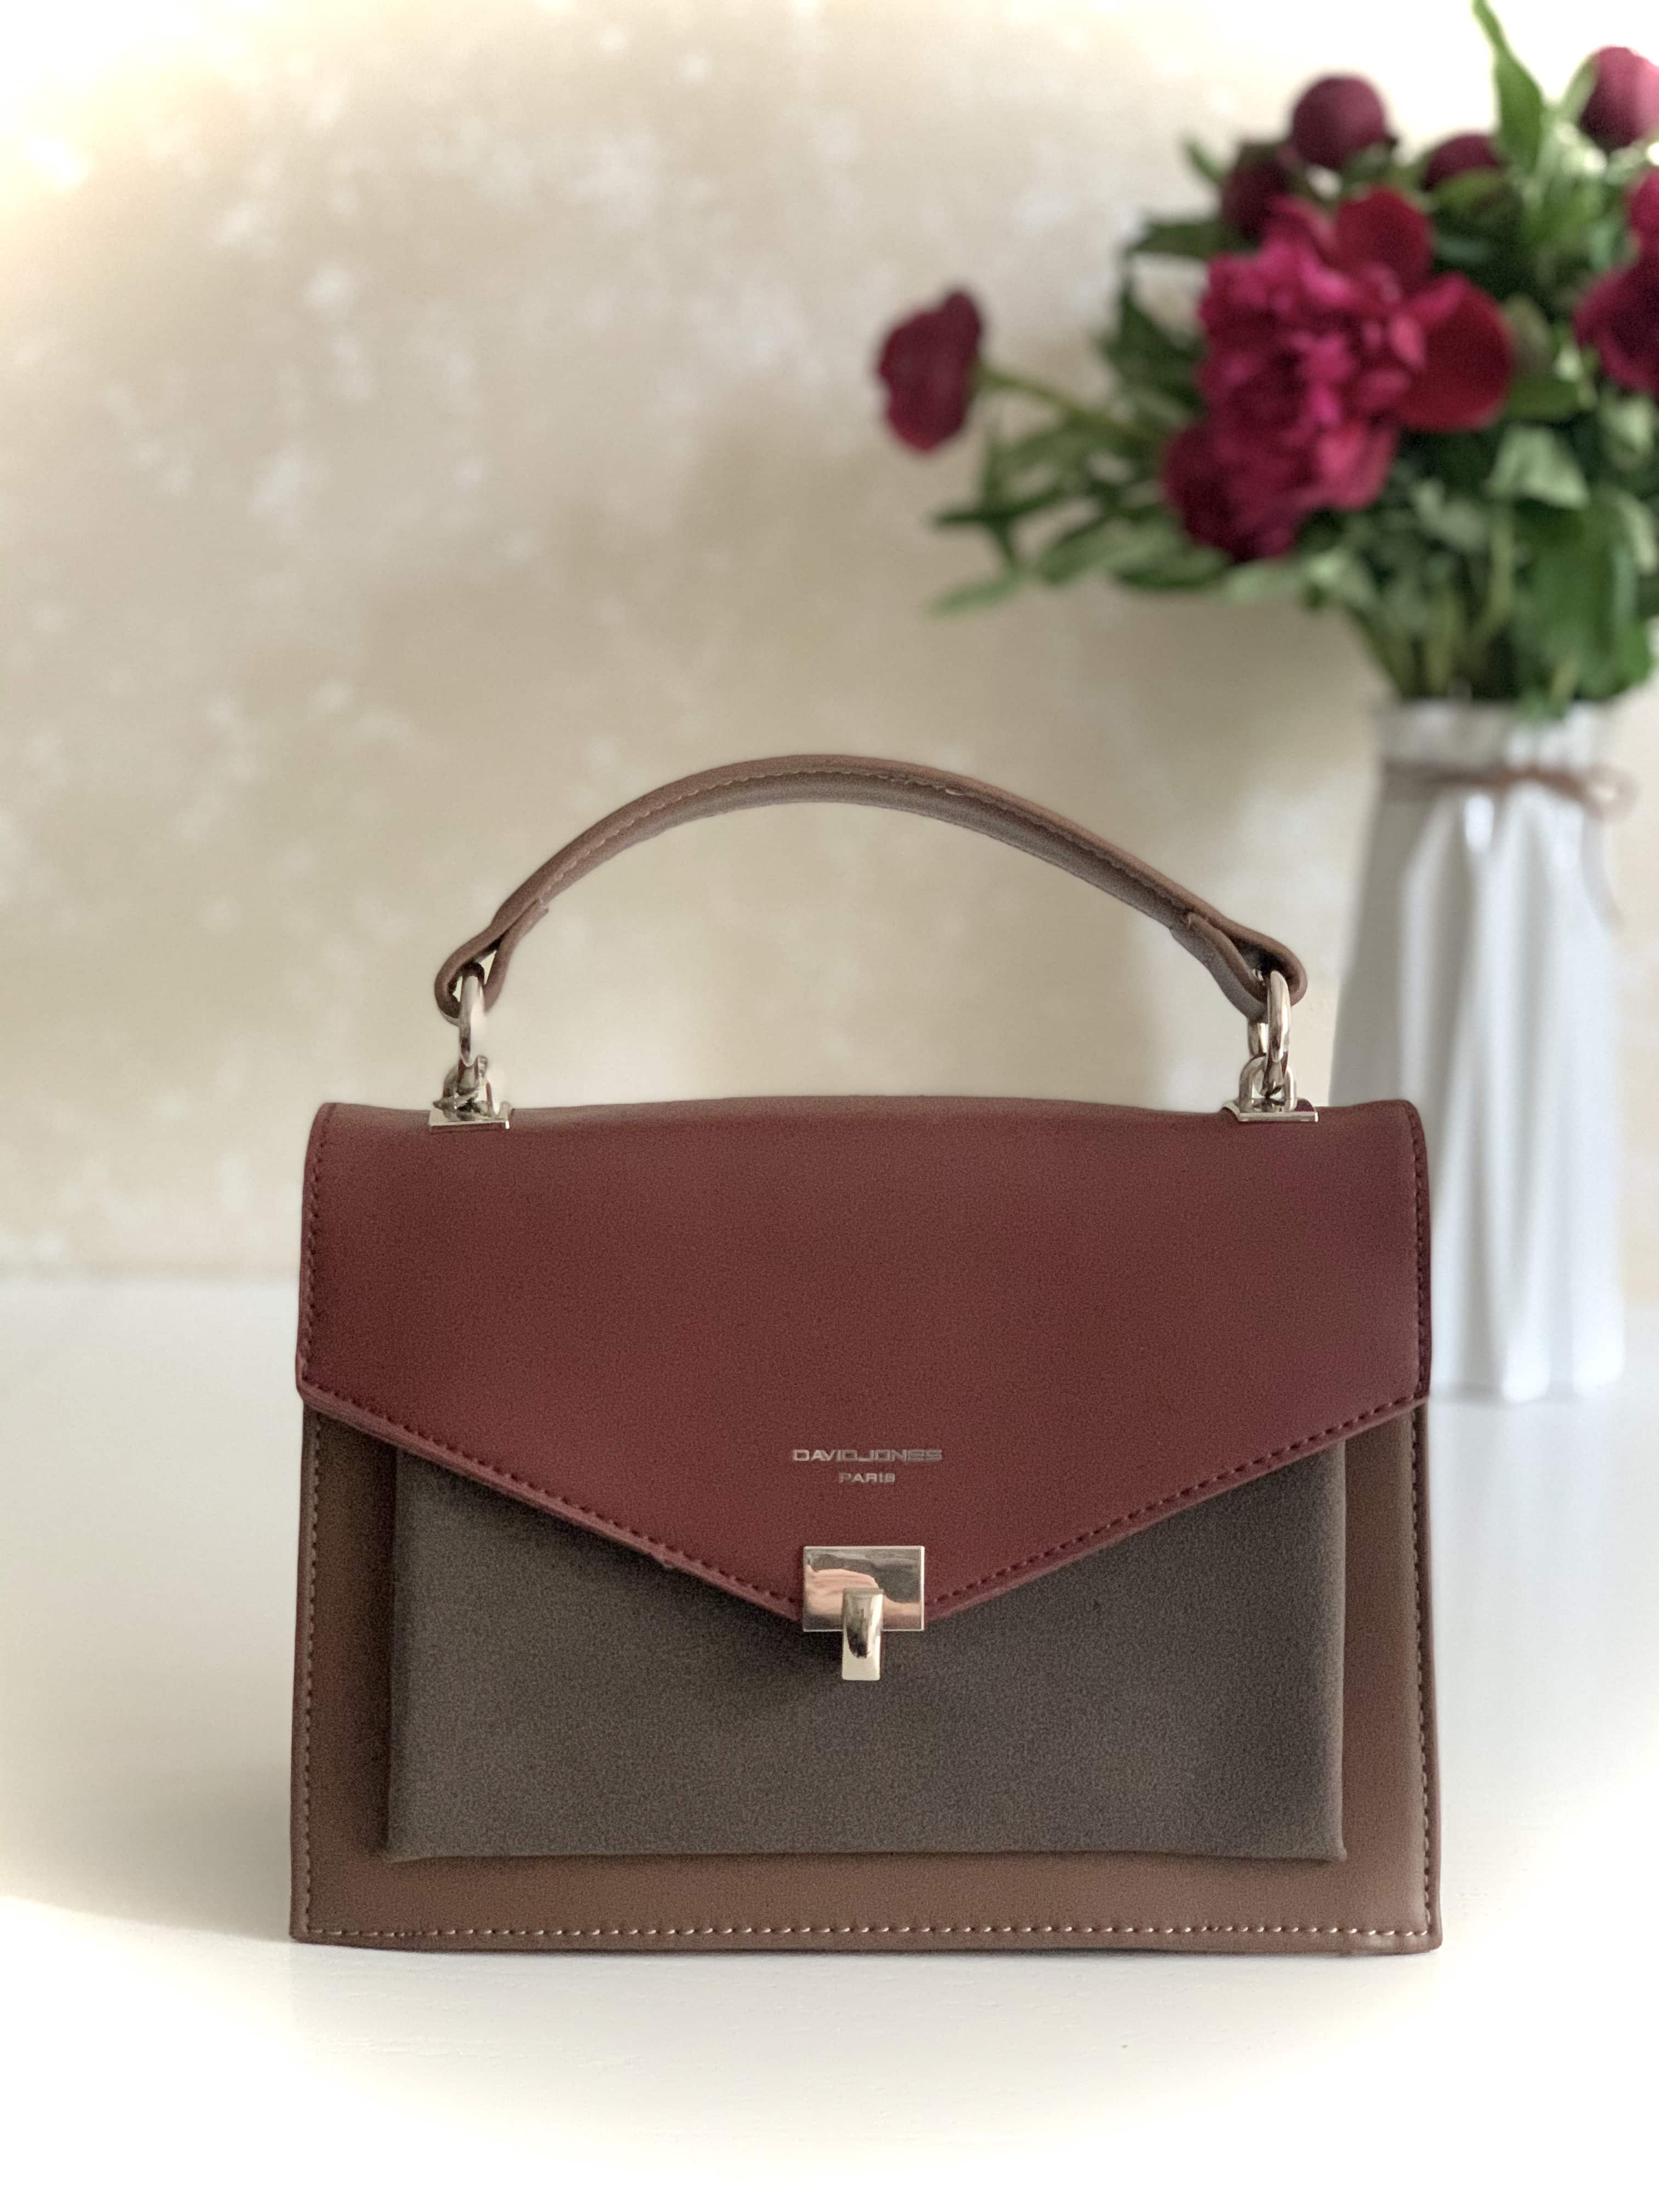 ЖЕНСКАЯ СУМОЧКА DAVID JONES CM5663T BORDEAUX/TAUPE